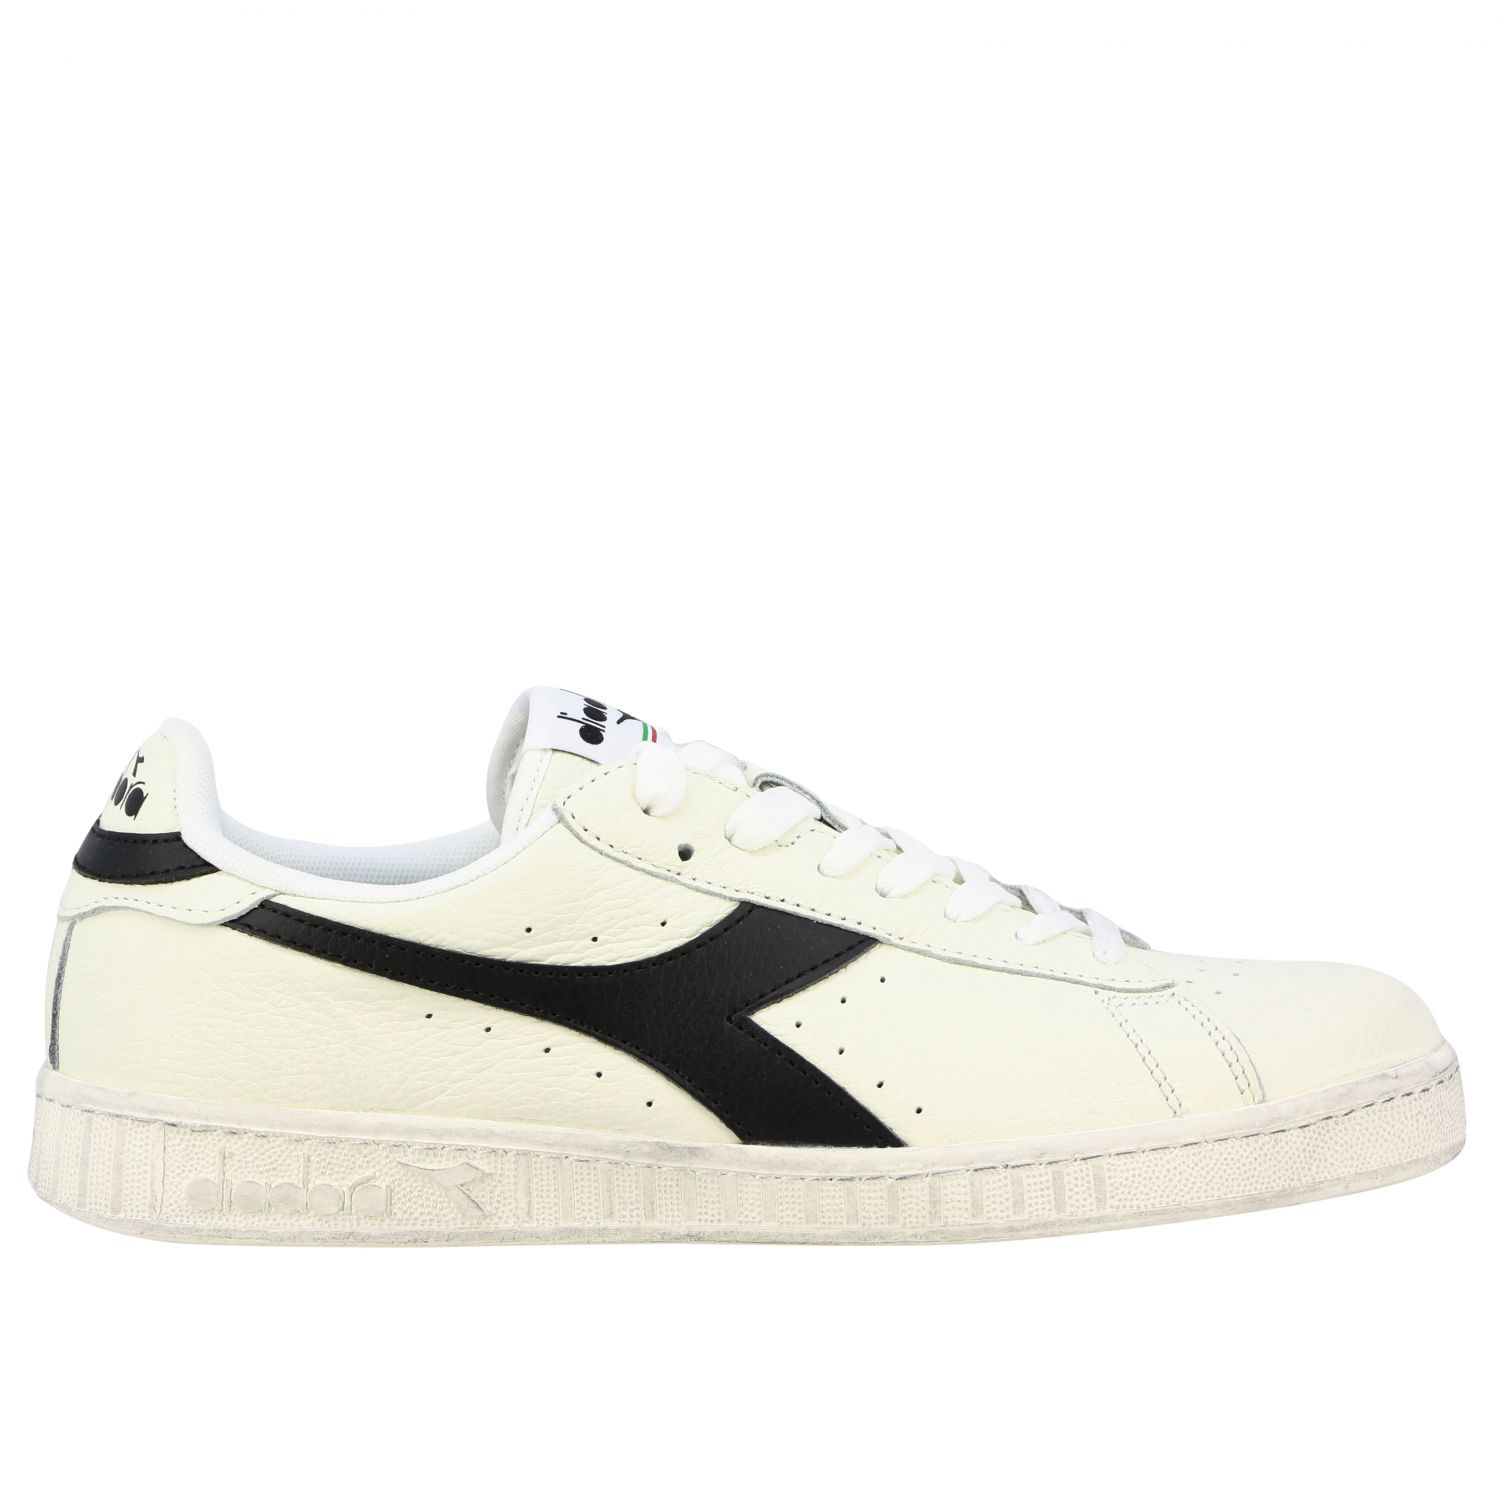 Sneakers Diadora: Diadora Game l low waxed sneakers in textured leather white 1 1